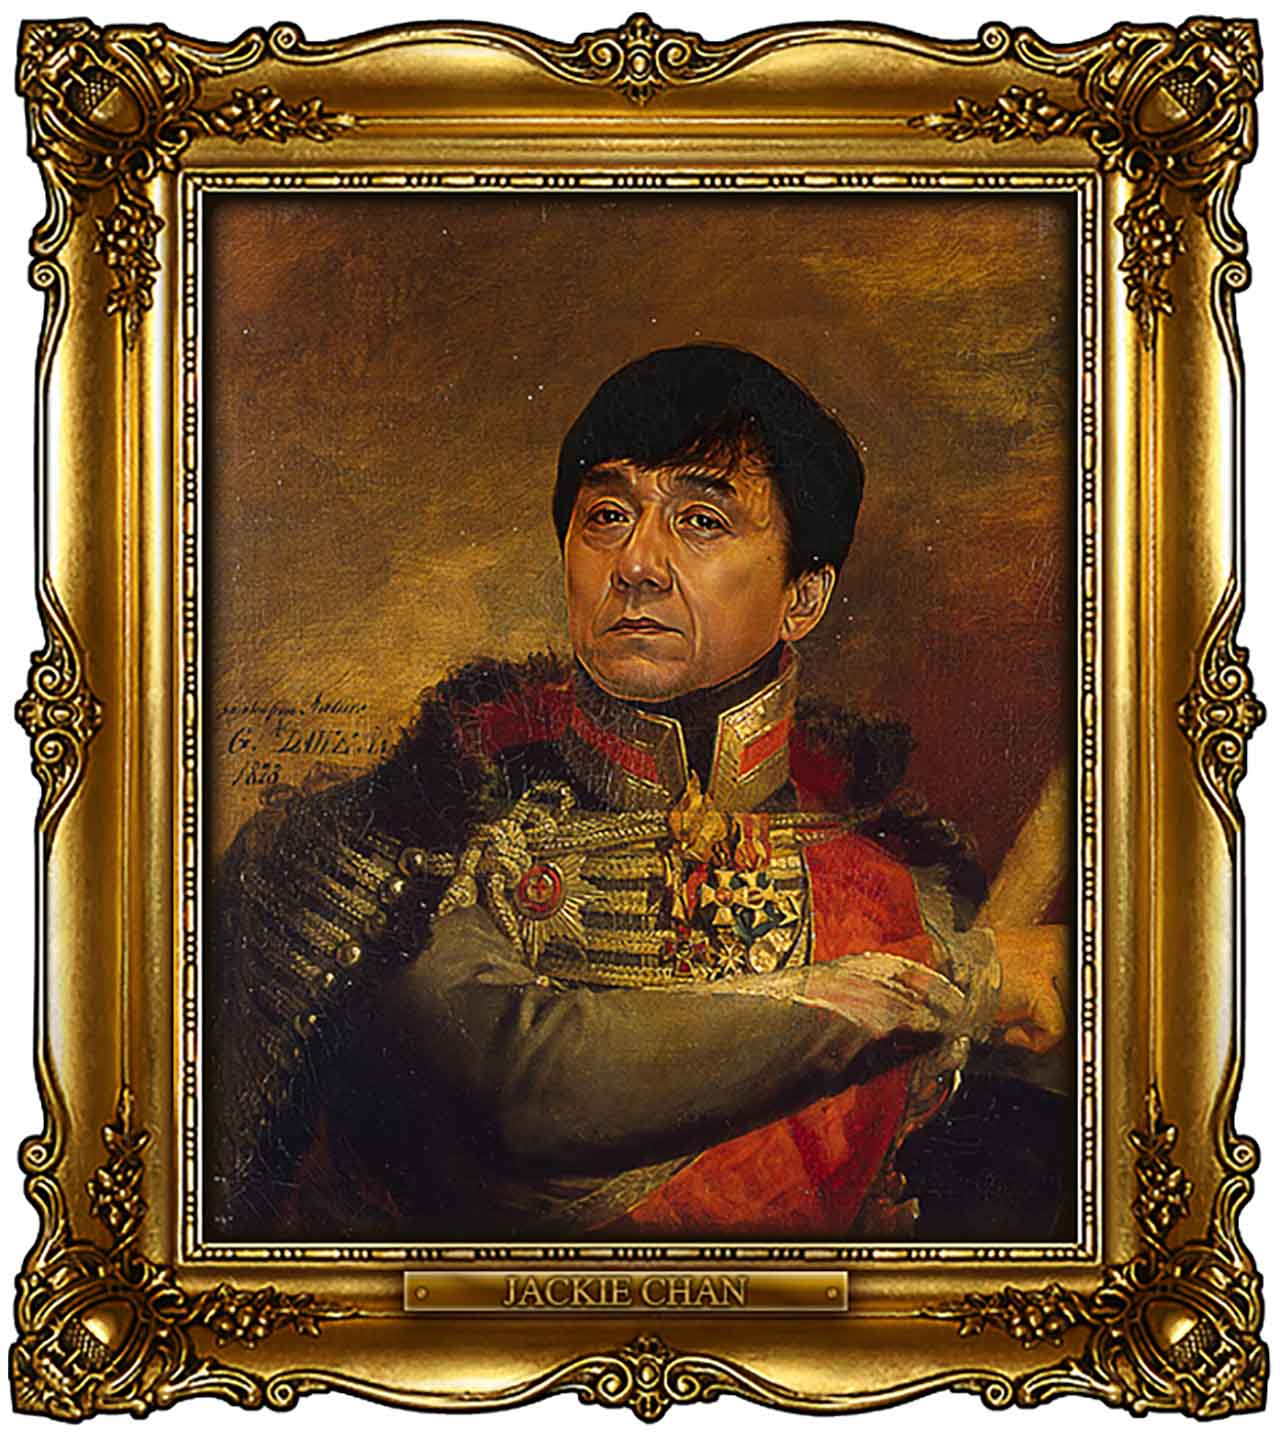 Artist Turns Famous Actors Into Russian Generals - Jackie Chan